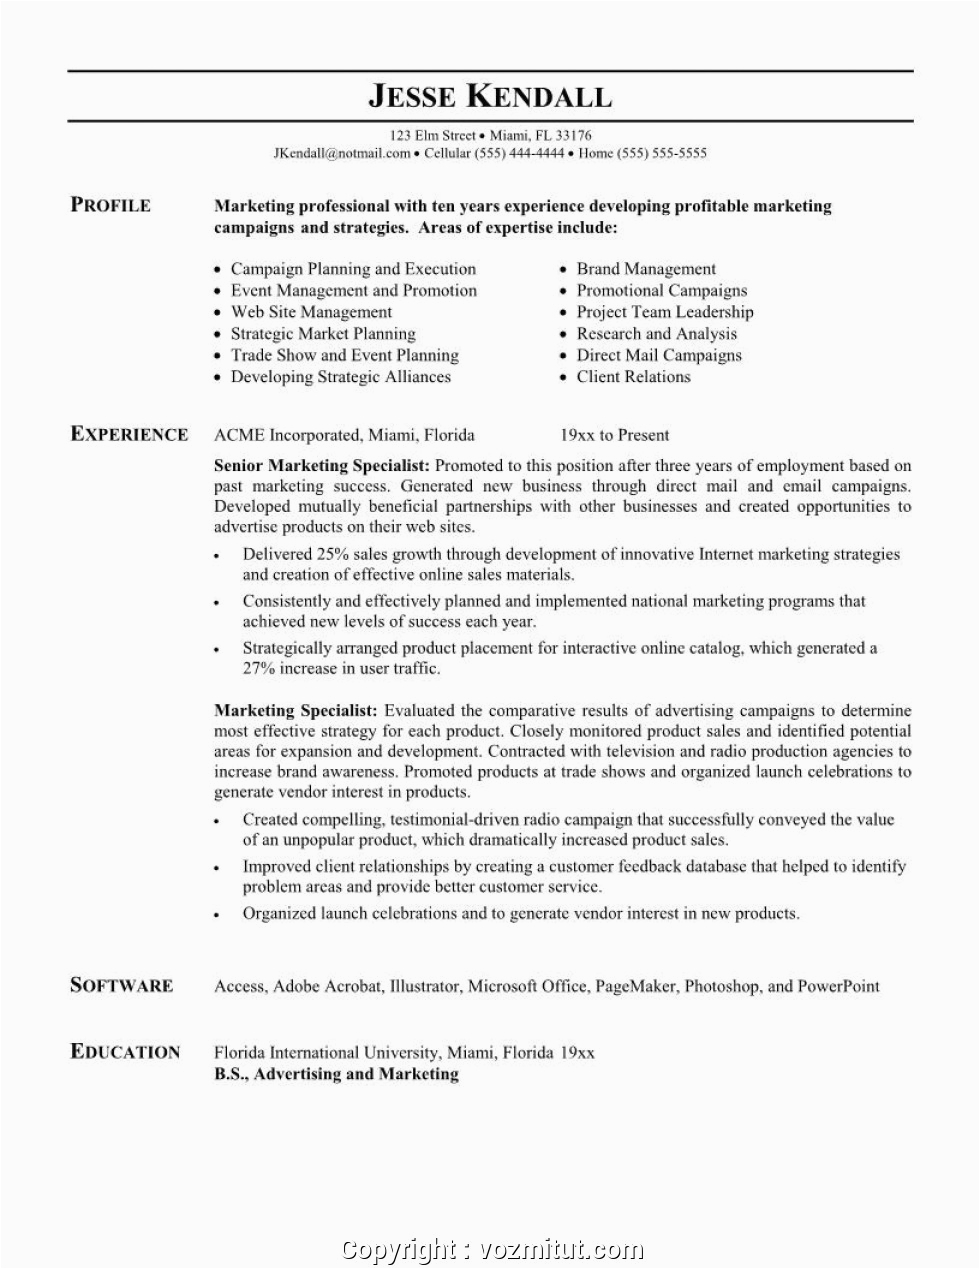 best sample resume for experienced marketing professional